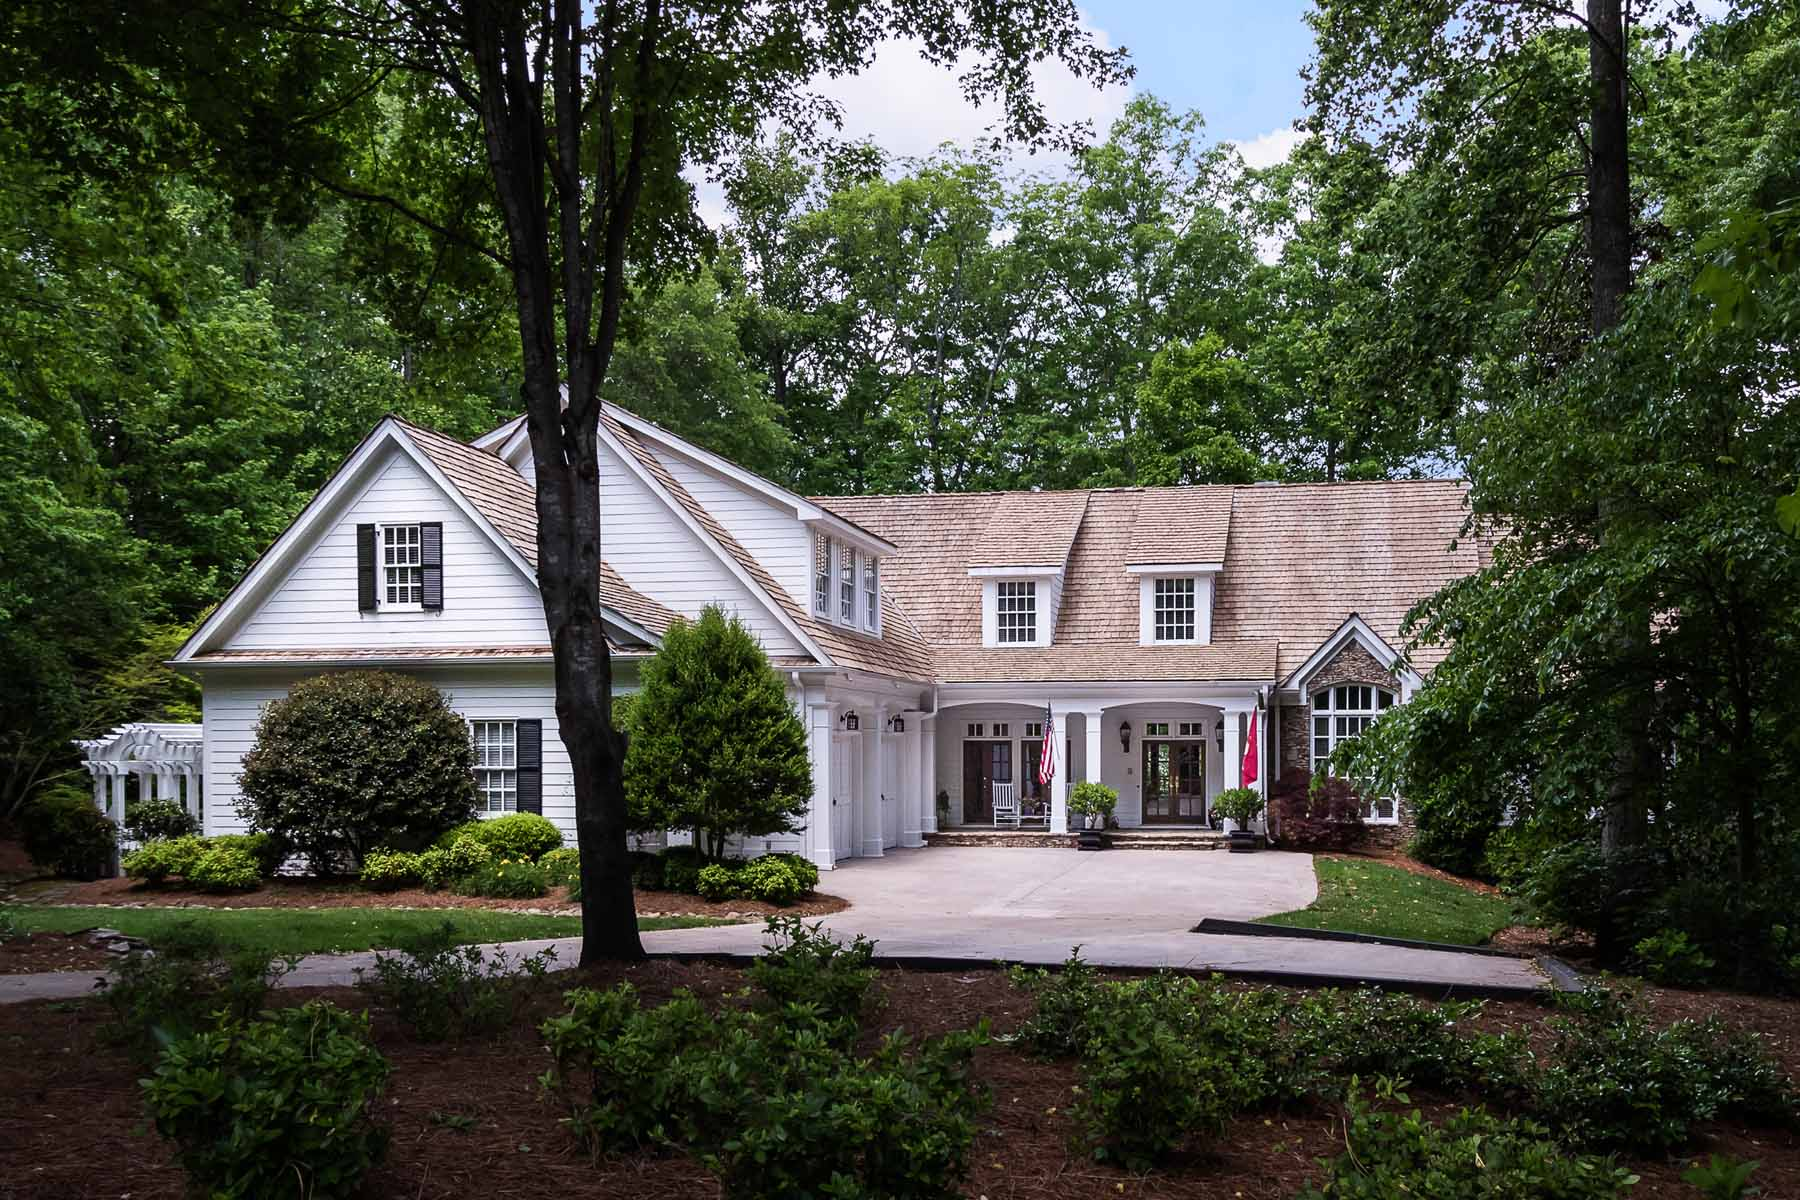 Villa per Vendita alle ore Private Lake Lot Home on Over Two Acres 510 Blue Heron Way Alpharetta, Georgia, 30007 Stati Uniti